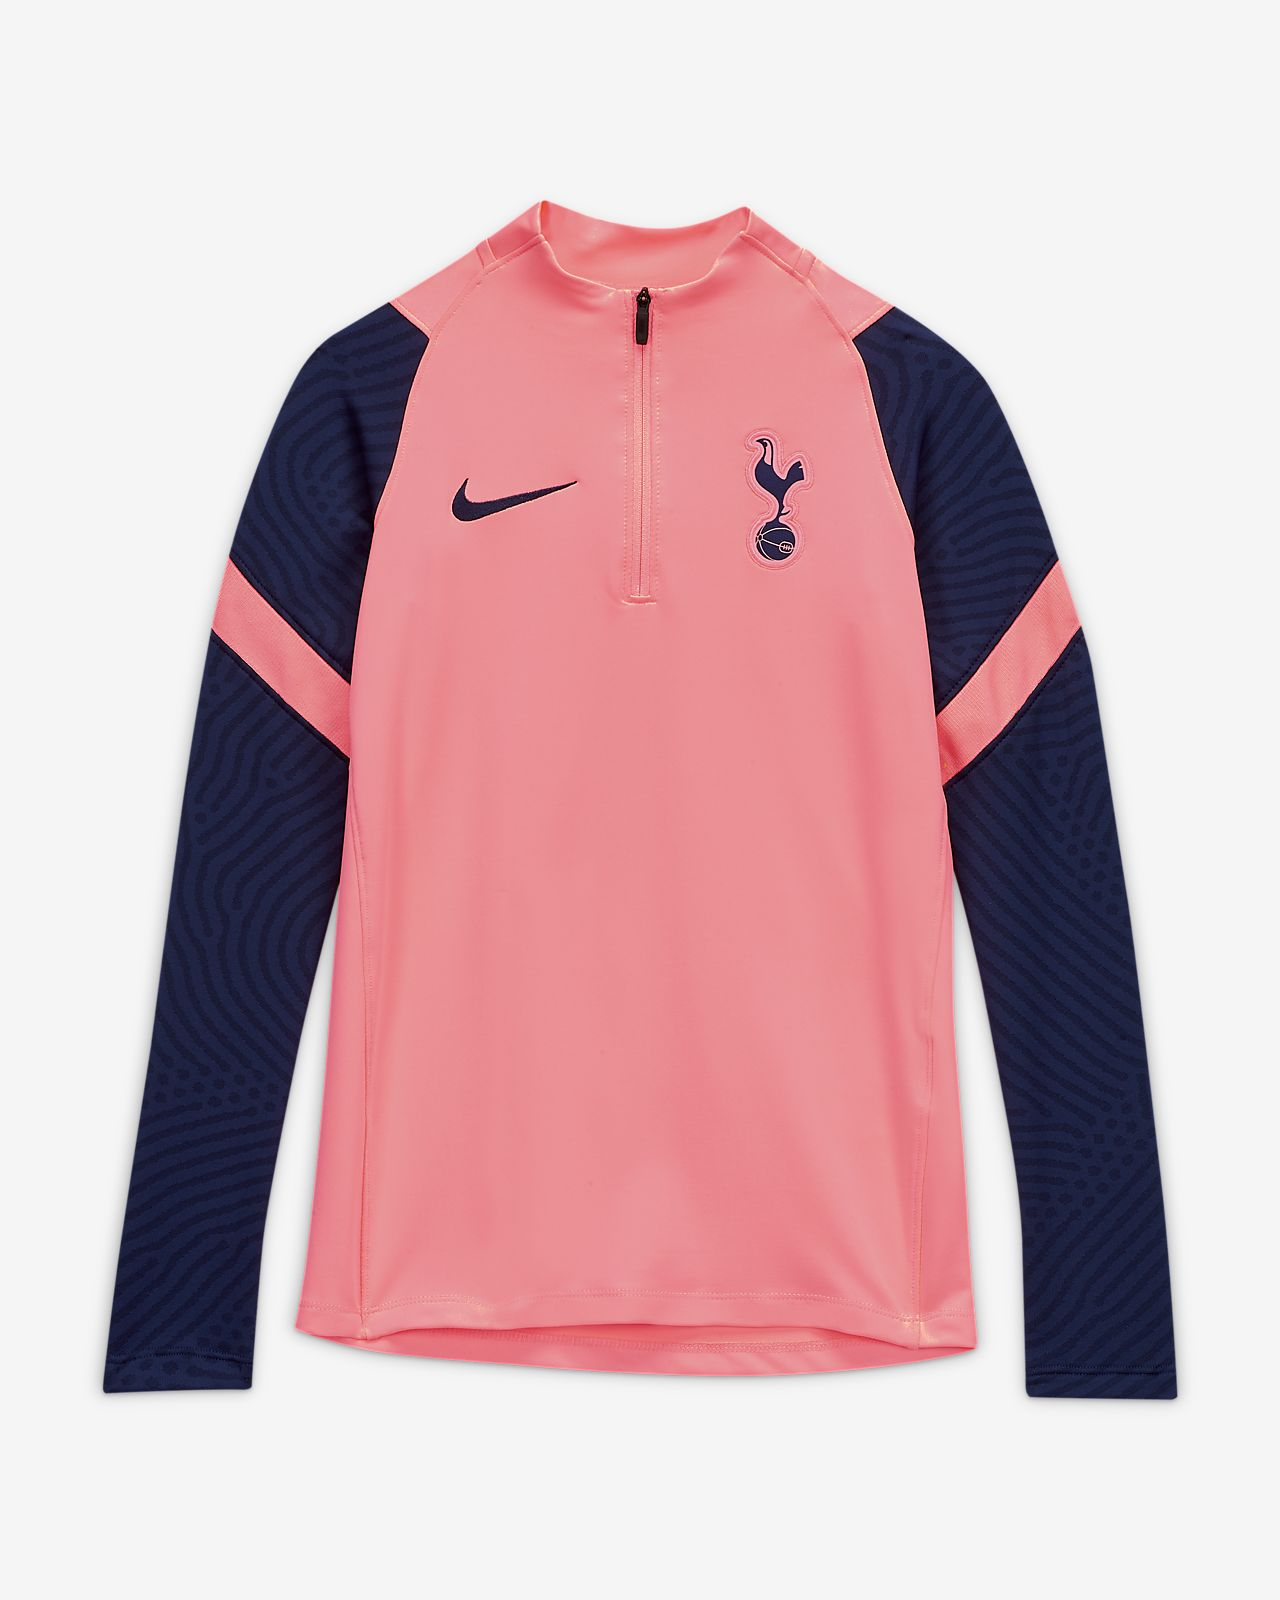 Tottenham Hotspur Strike Older Kids' Football Drill Top